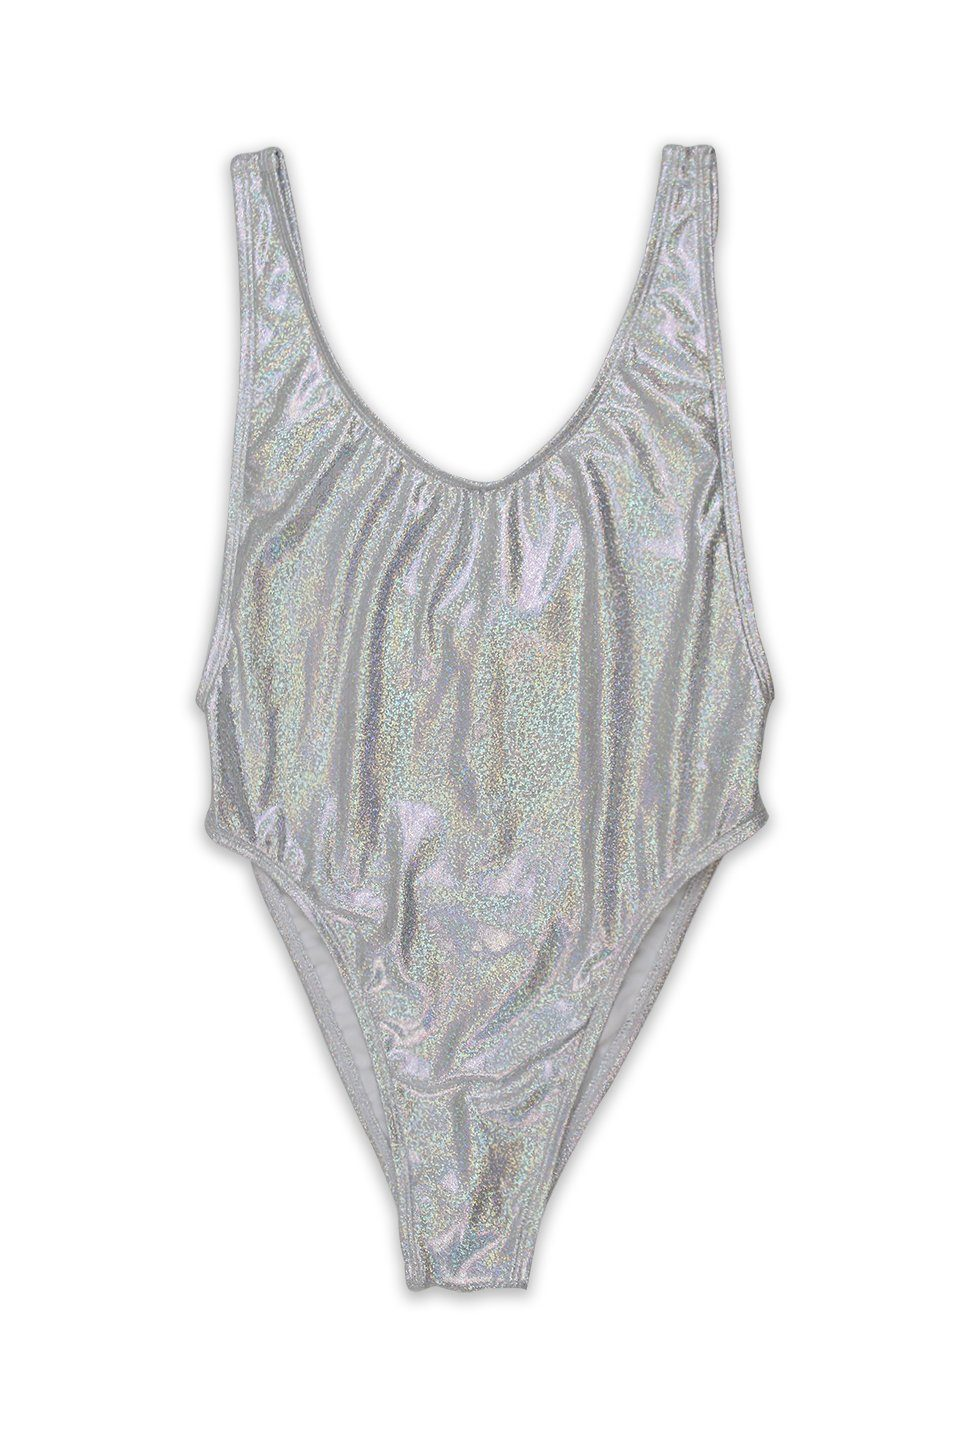 Silver Glitter V-Cleavage High Cut One Piece Front - Dippin' Daisy's Swimwear